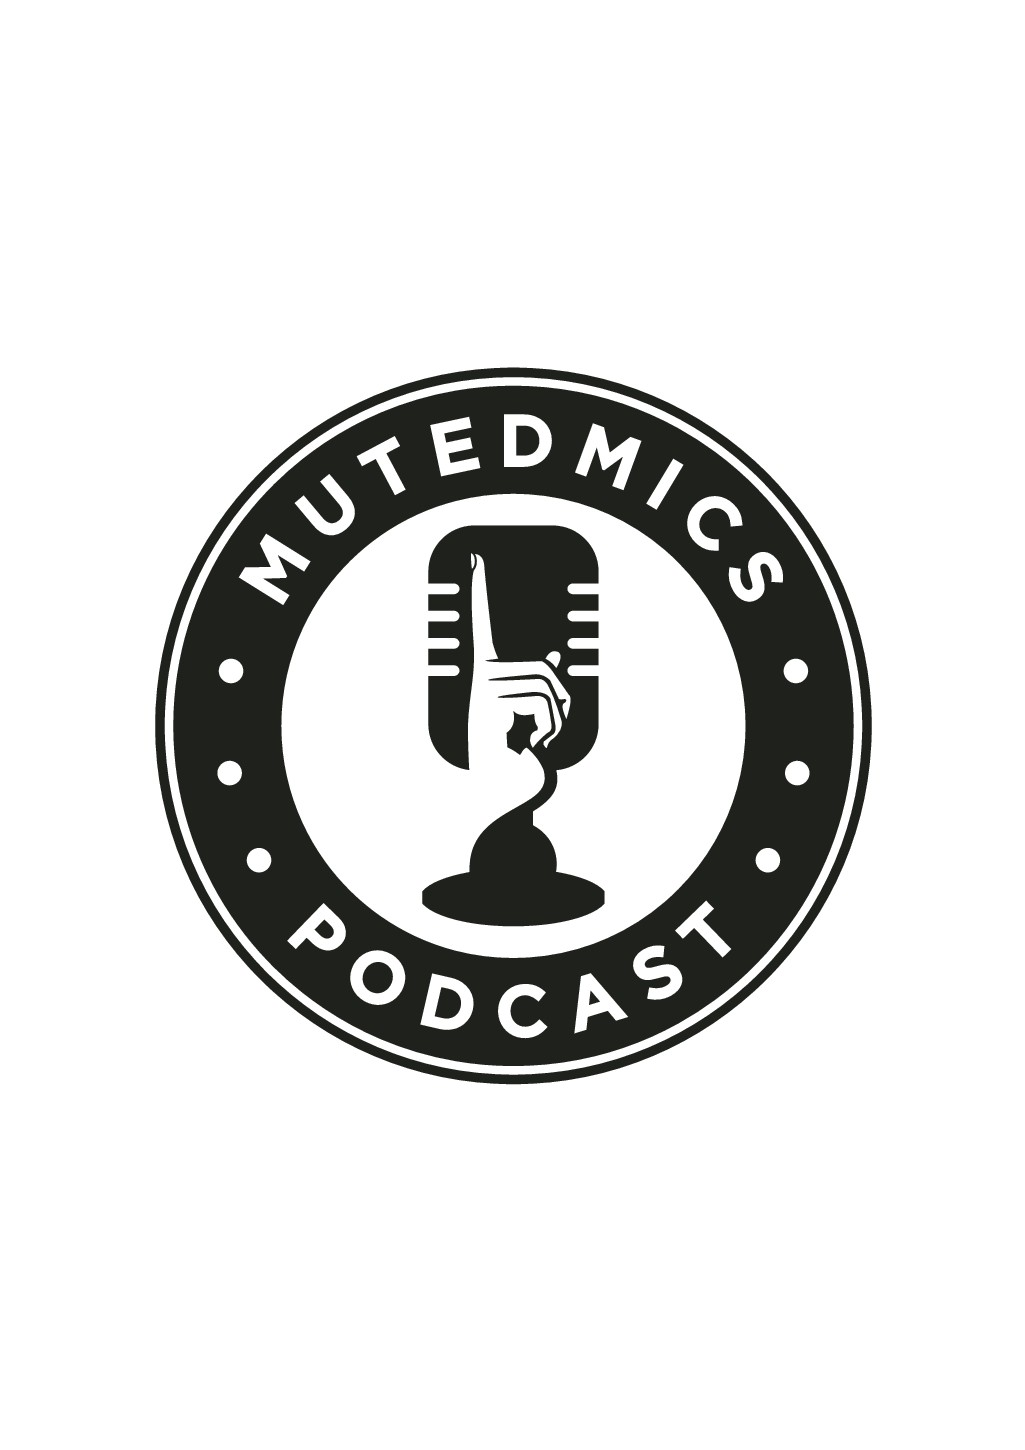 Design a logo for the MutedMics podcast. A podcast that gives a voice to the voiceless.